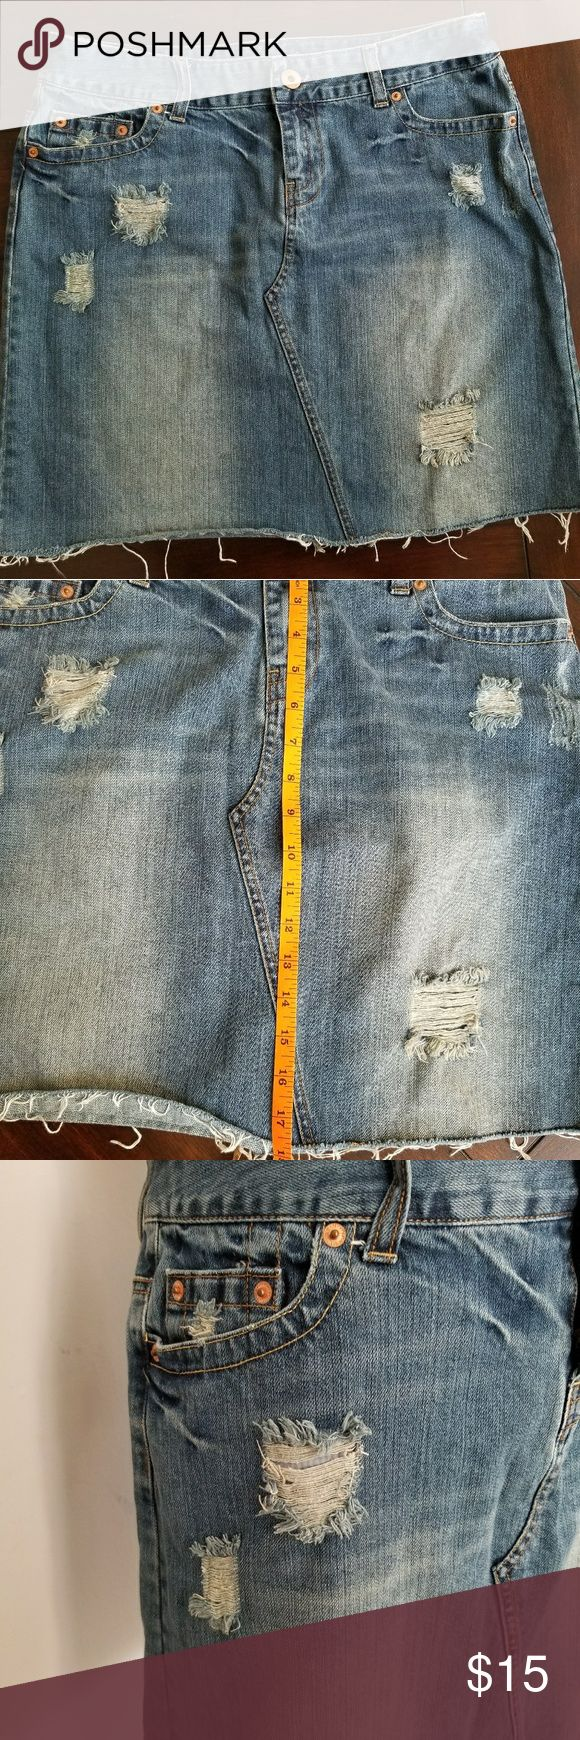 """AE distressed jean skirt Cute distressed jean skirt. EUC Waist: 16"""" laying flat Inseam: 18"""" American Eagle Outfitters Skirts Midi"""